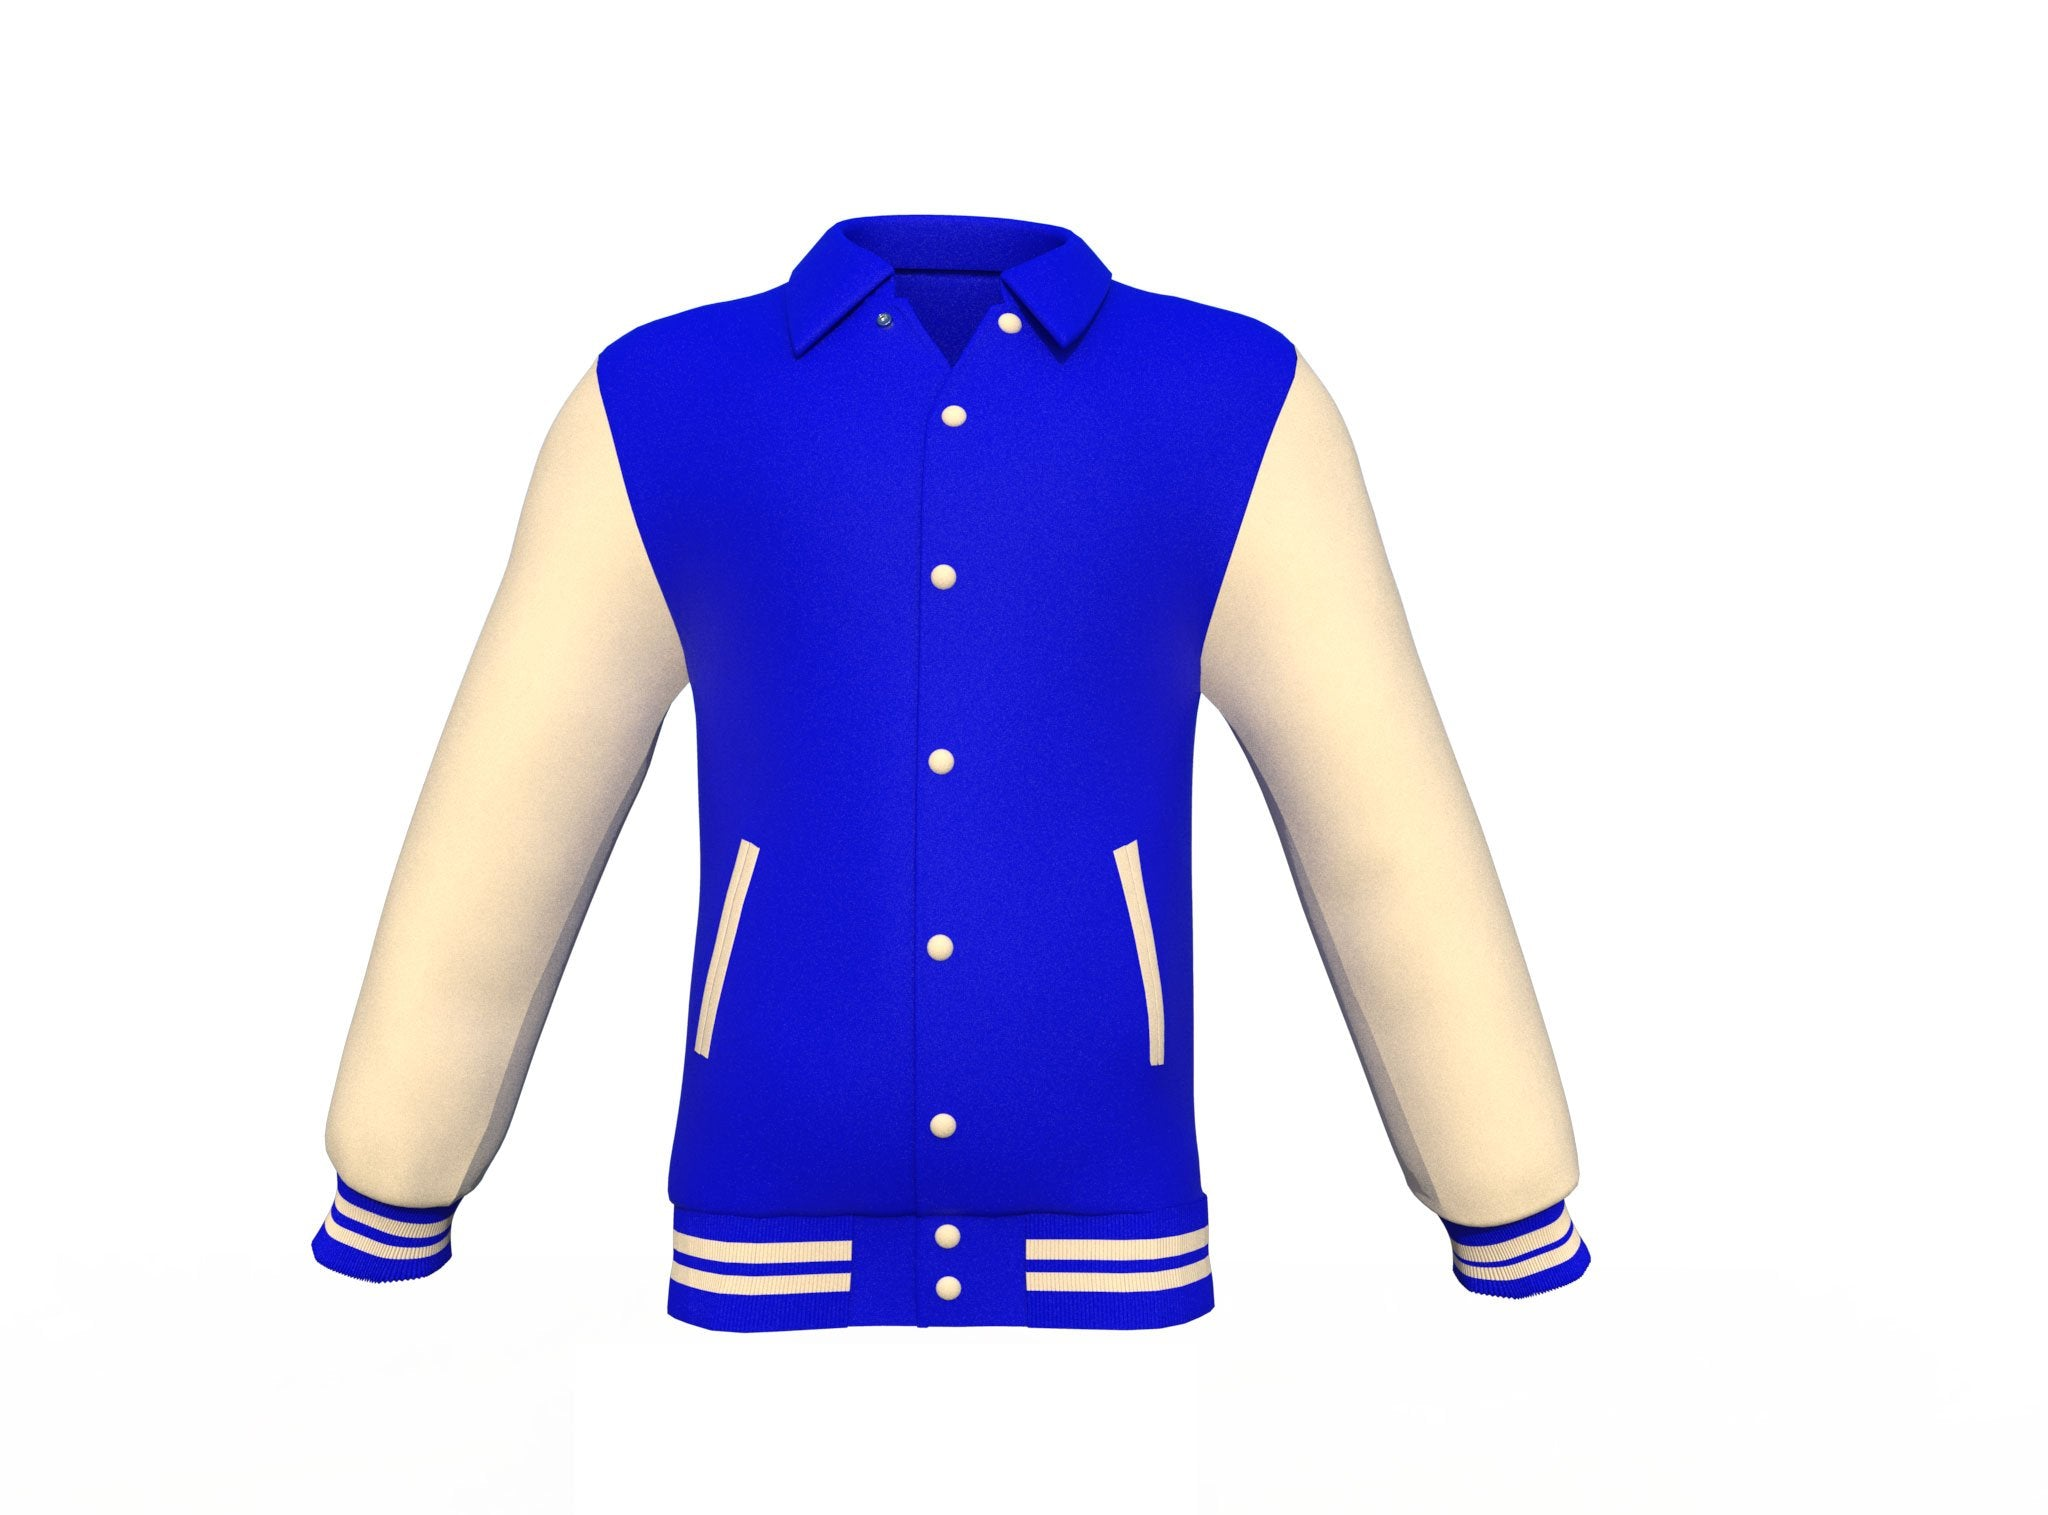 Blue Varsity Letterman Jacket with Cream Sleeves